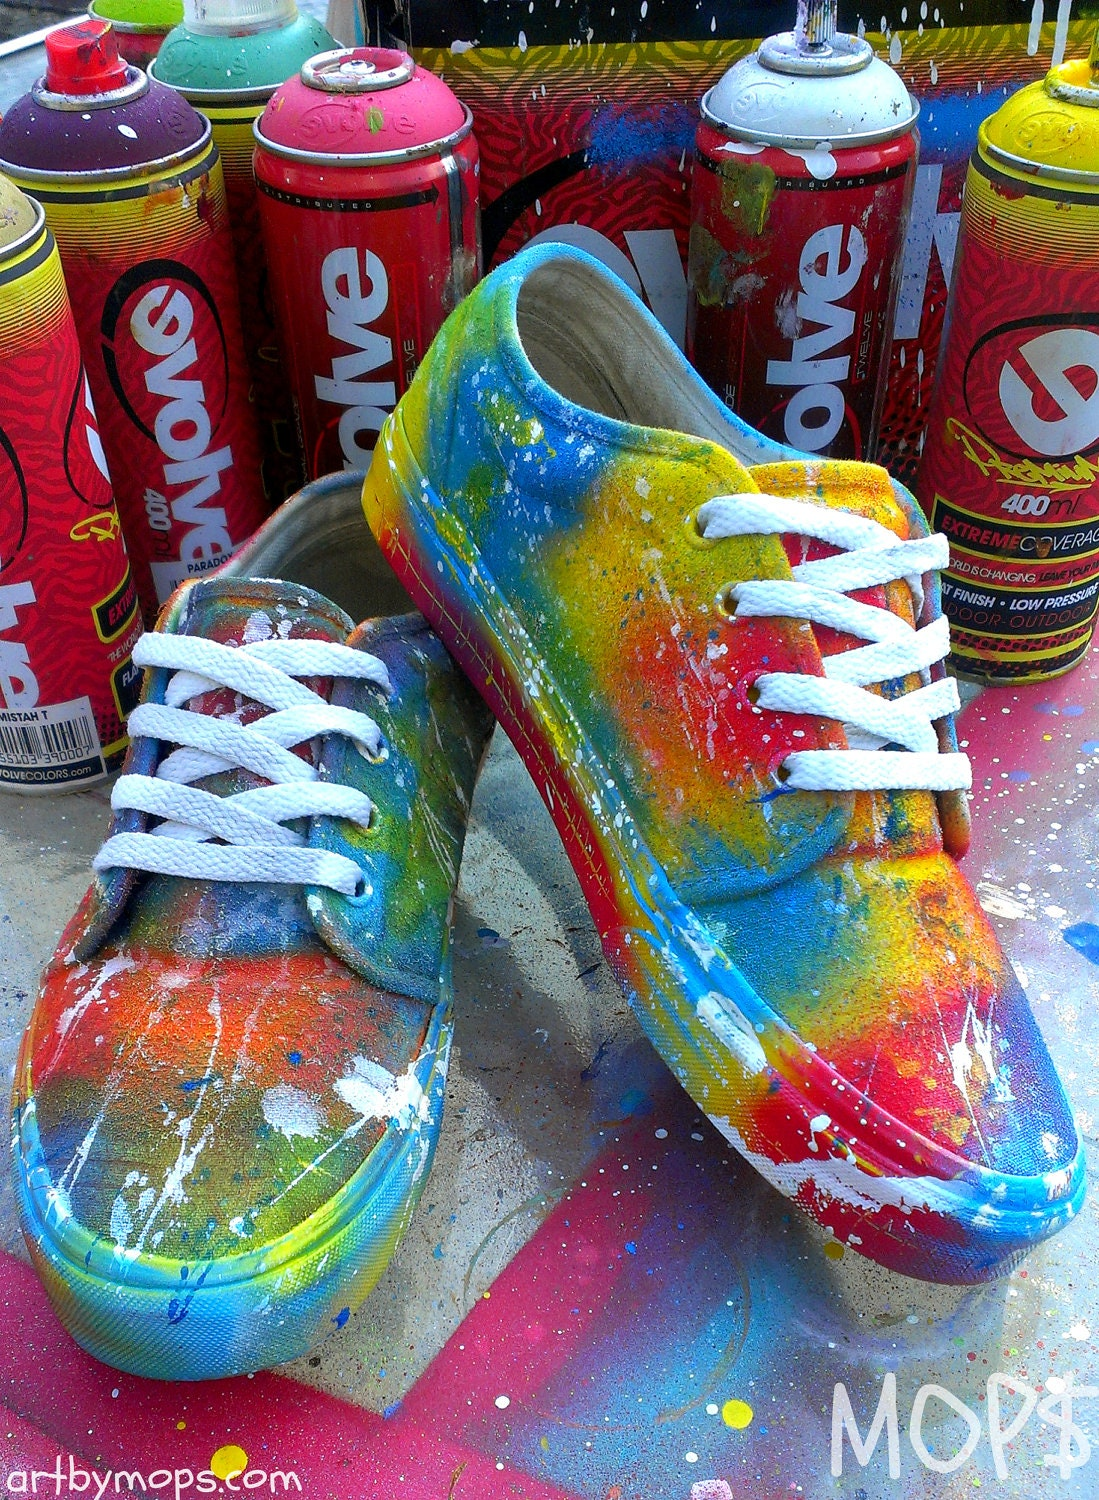 custom painted vans shoes by mops in a graffiti by